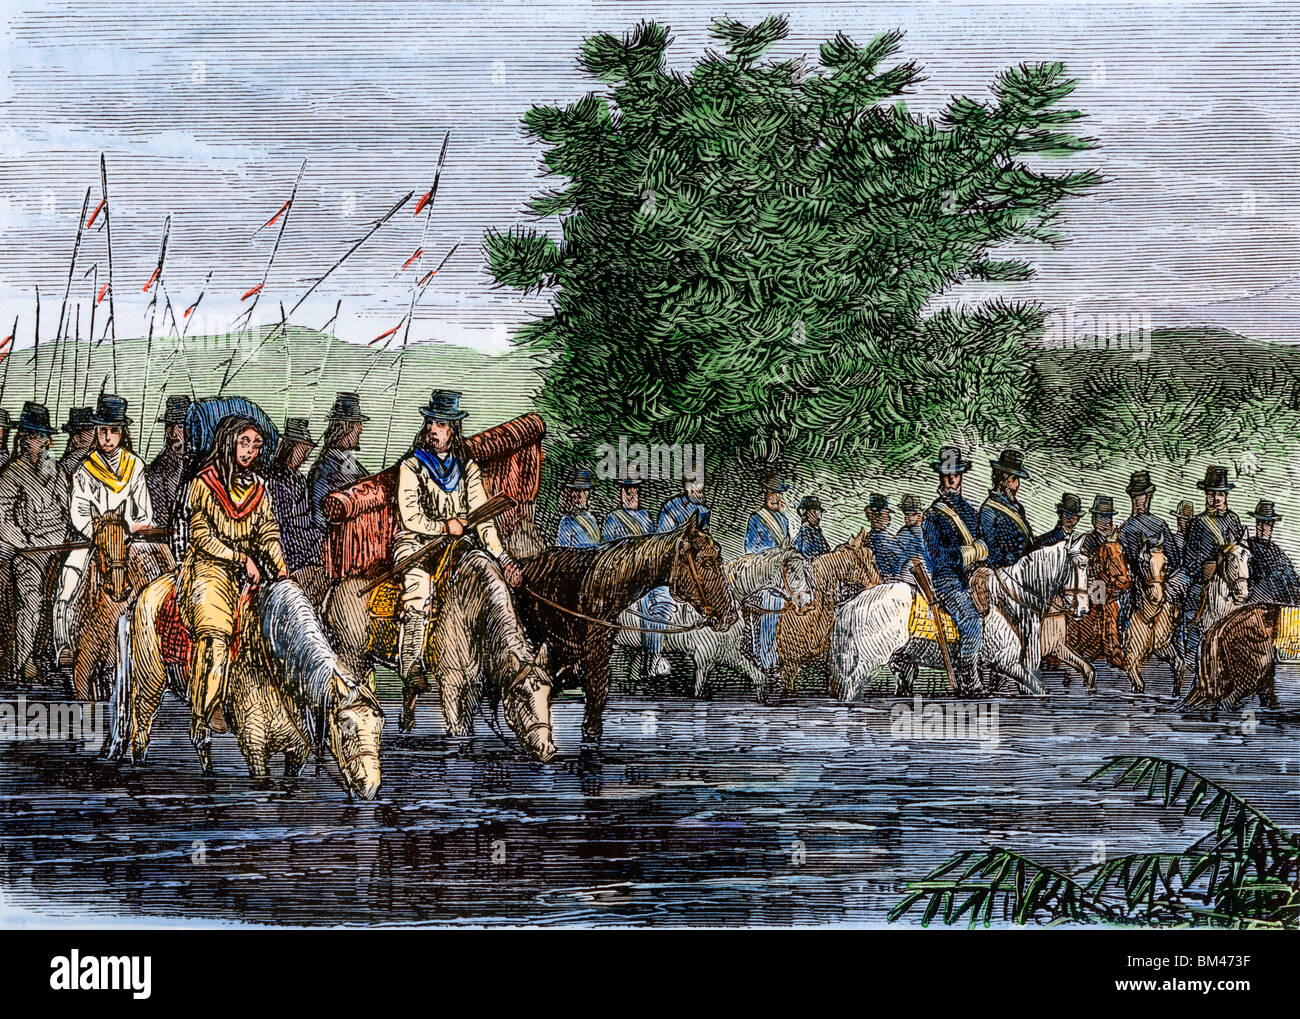 General Crook's army with Indian scouts before the Battle of Rosebud Creek, Sioux wars, 1876. Hand-colored woodcut - Stock Image